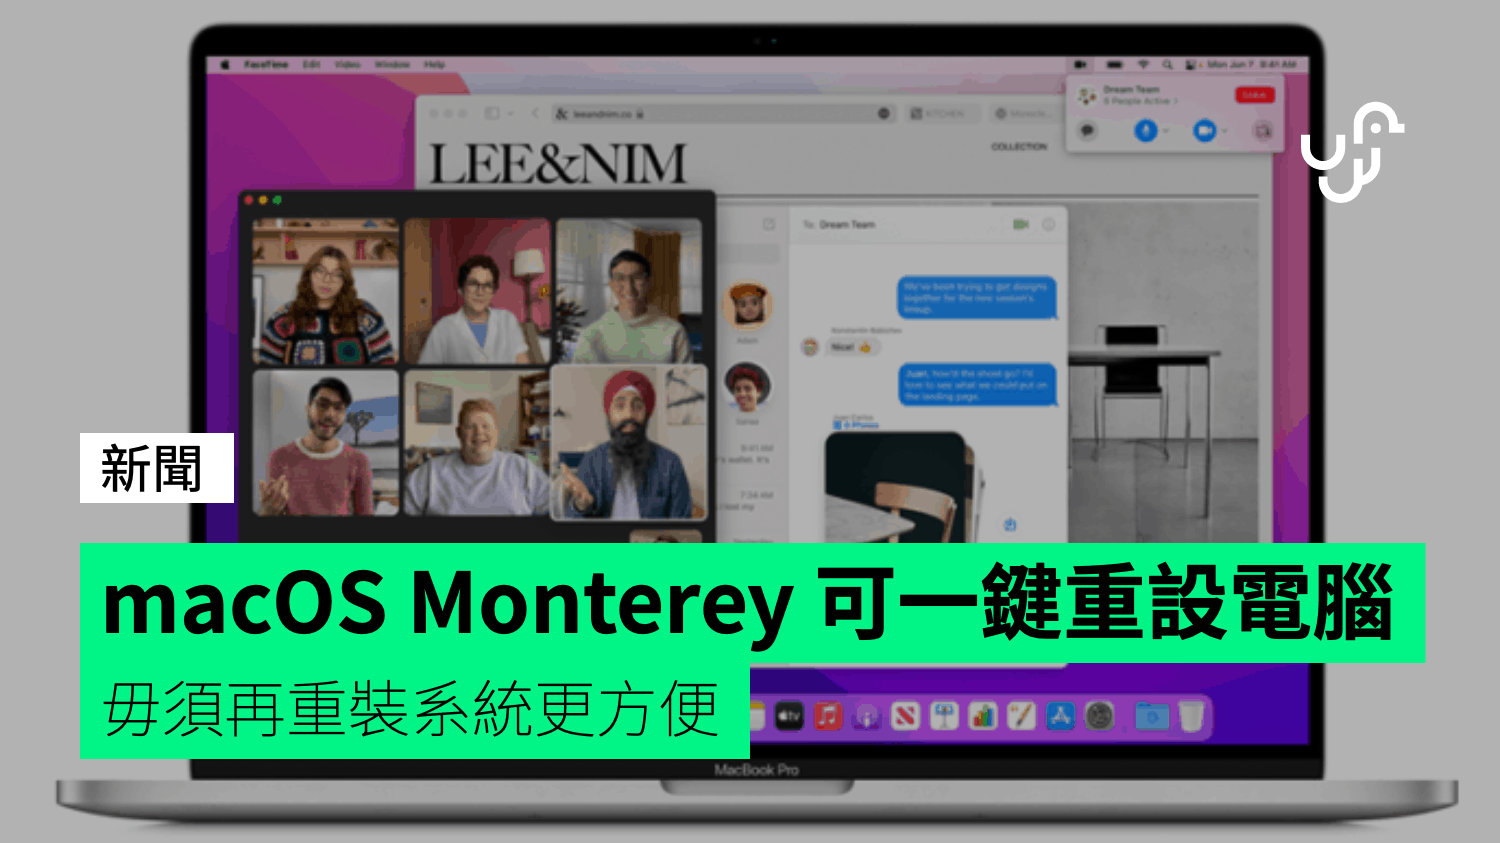 Recently, google made the first batch of android apps available for chrome. Macos Monterey Can Reset The Computer With One Click No Need To Reinstall The System More Convenient Hong Kong Unwire Hk Newsdir3